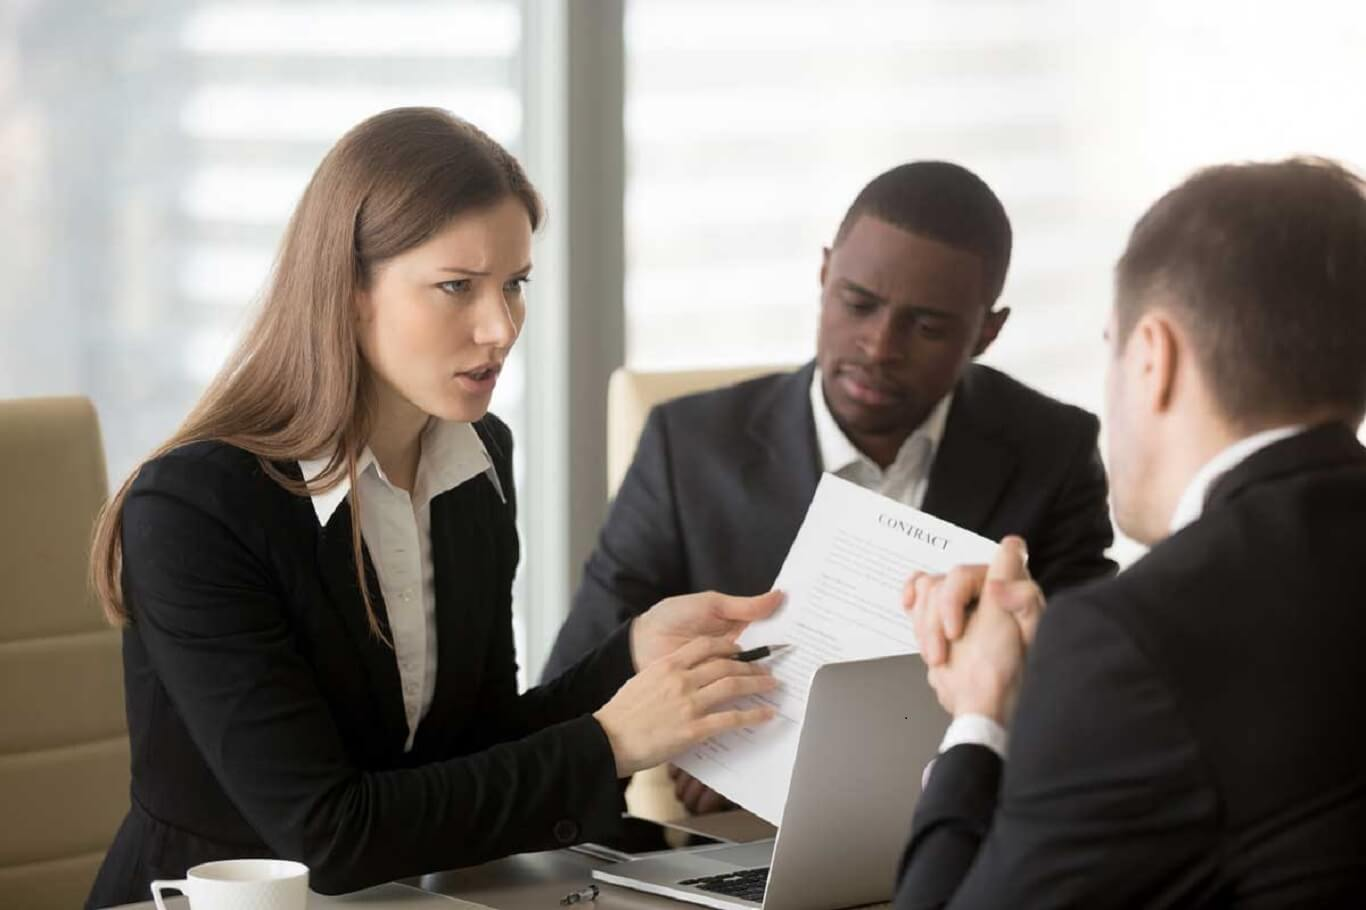 How to file an ethics complaint against a lawyer